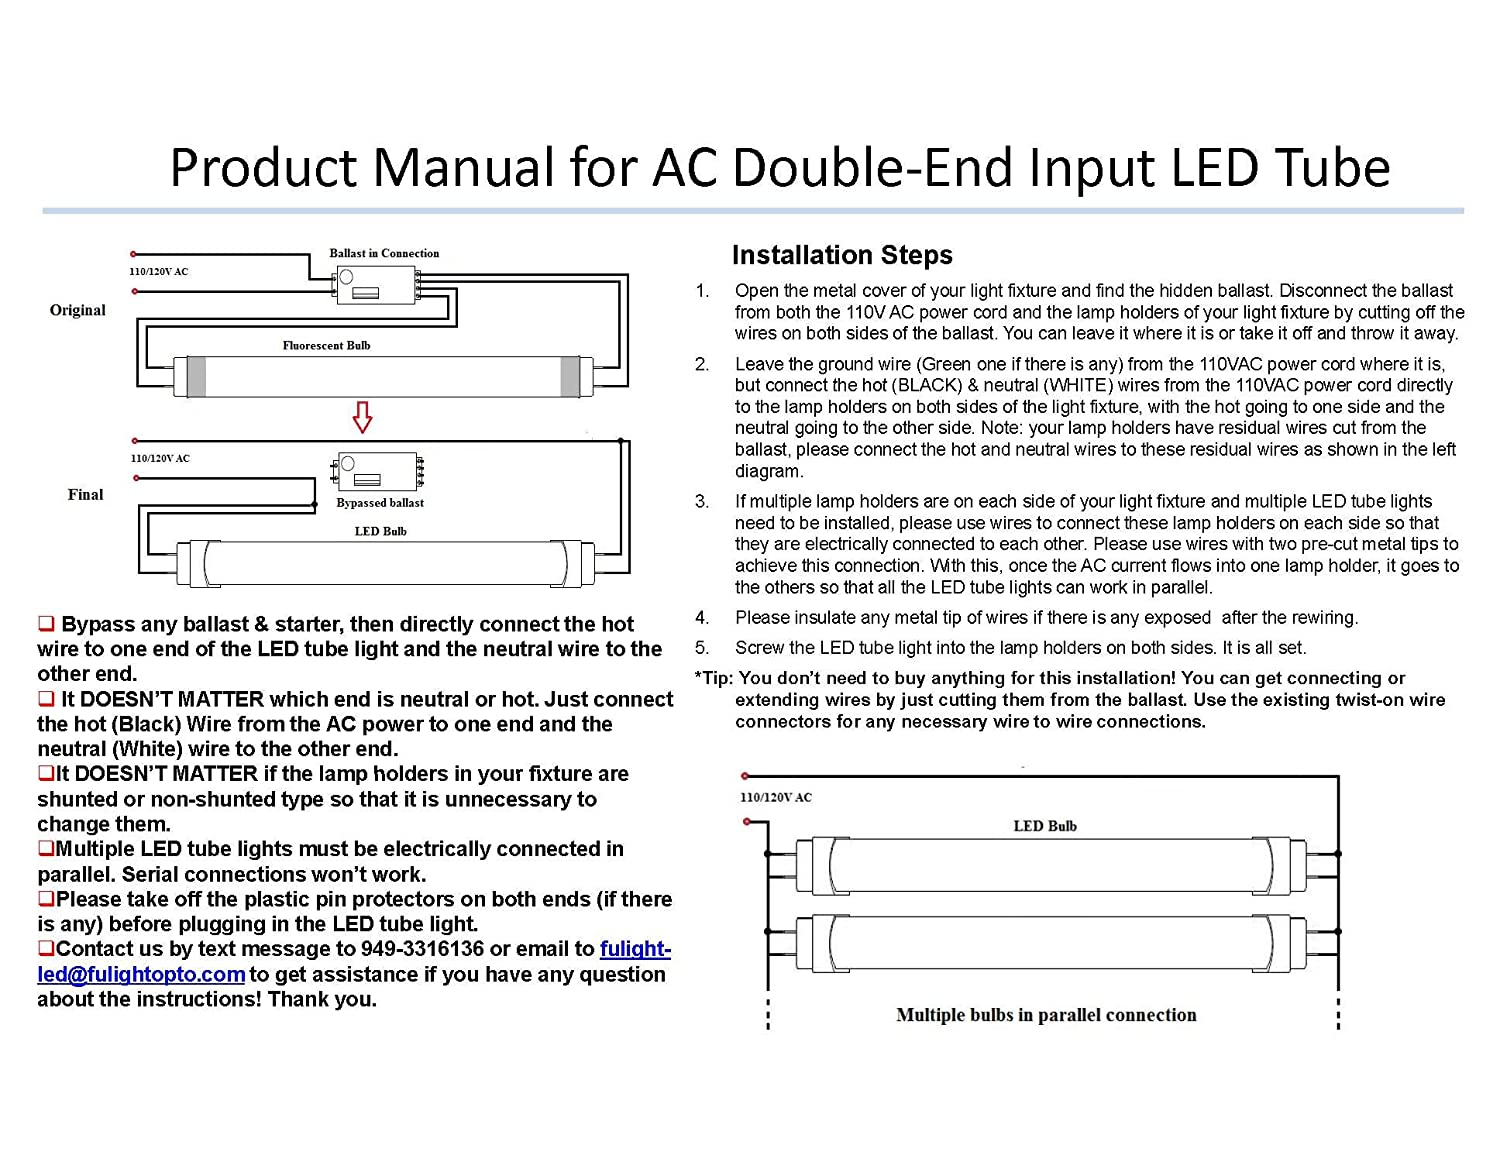 Fulight Rotatable Led F15t8 Tube Light 18 17 3 4 Actual Length Bulb Circuit Diagram In Addition Replacing Old Double 15ft 7w 15w Equivalent Daylight 6000k End Powered Frosted Cover